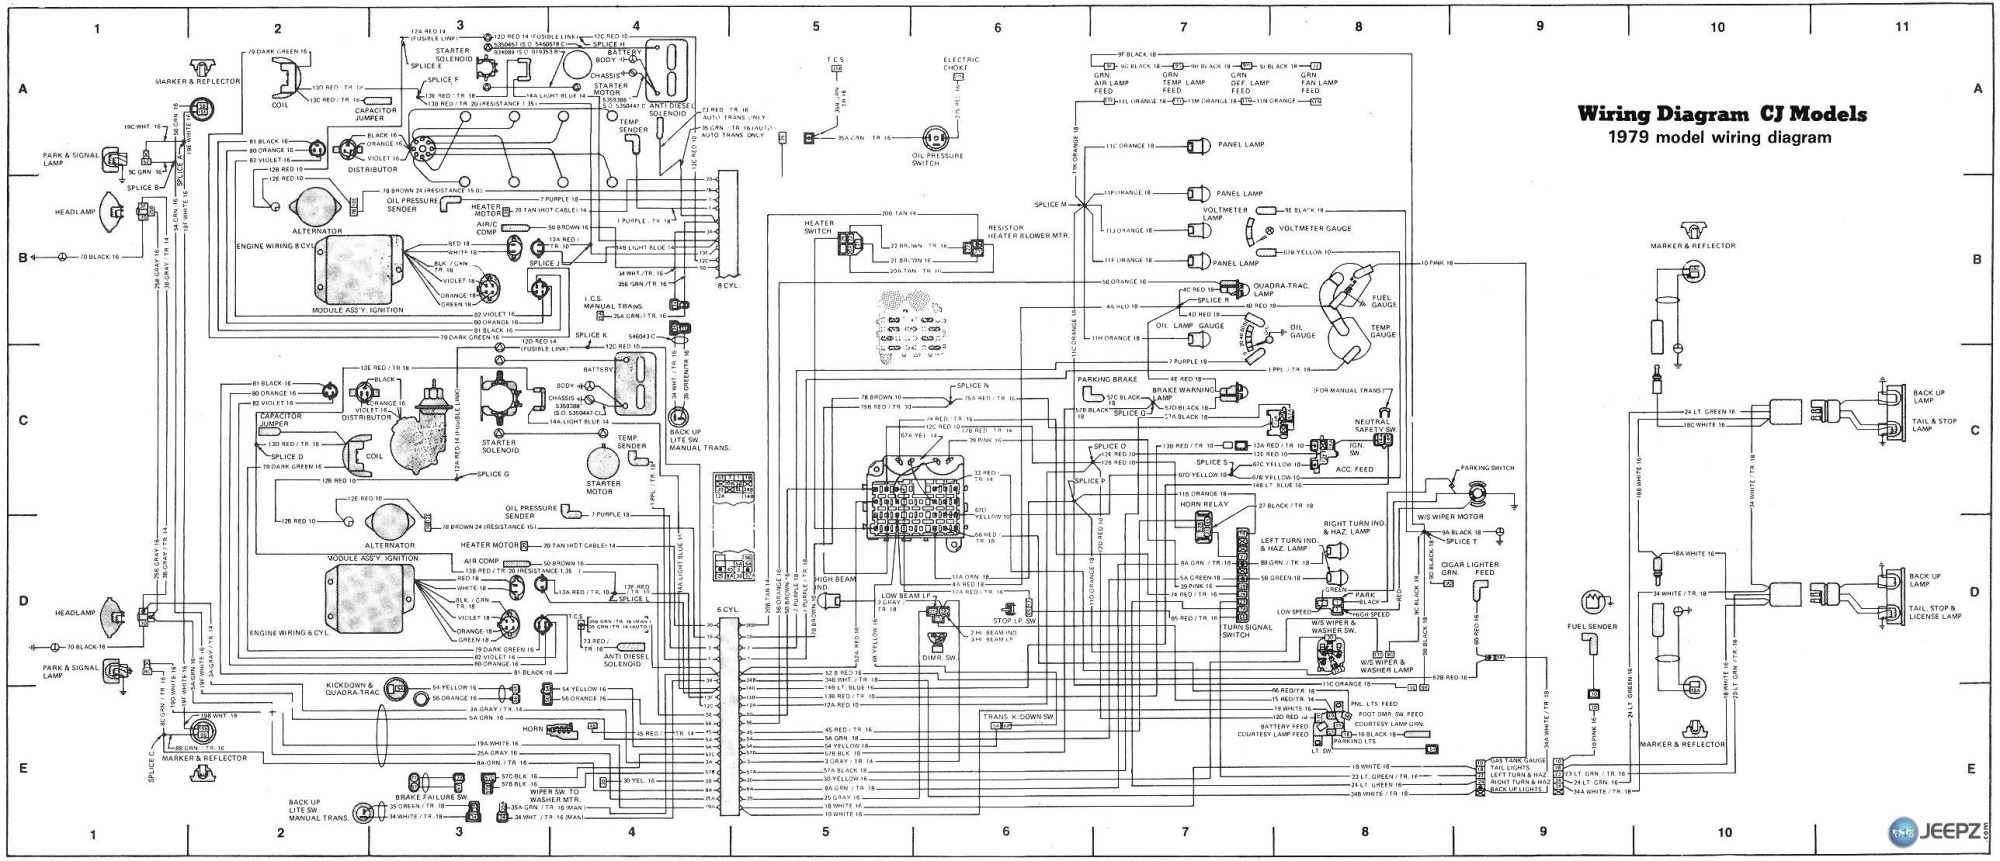 hight resolution of cj5 wiring diagram 2008 jeep cherokee black and white 2001 grand cherokee